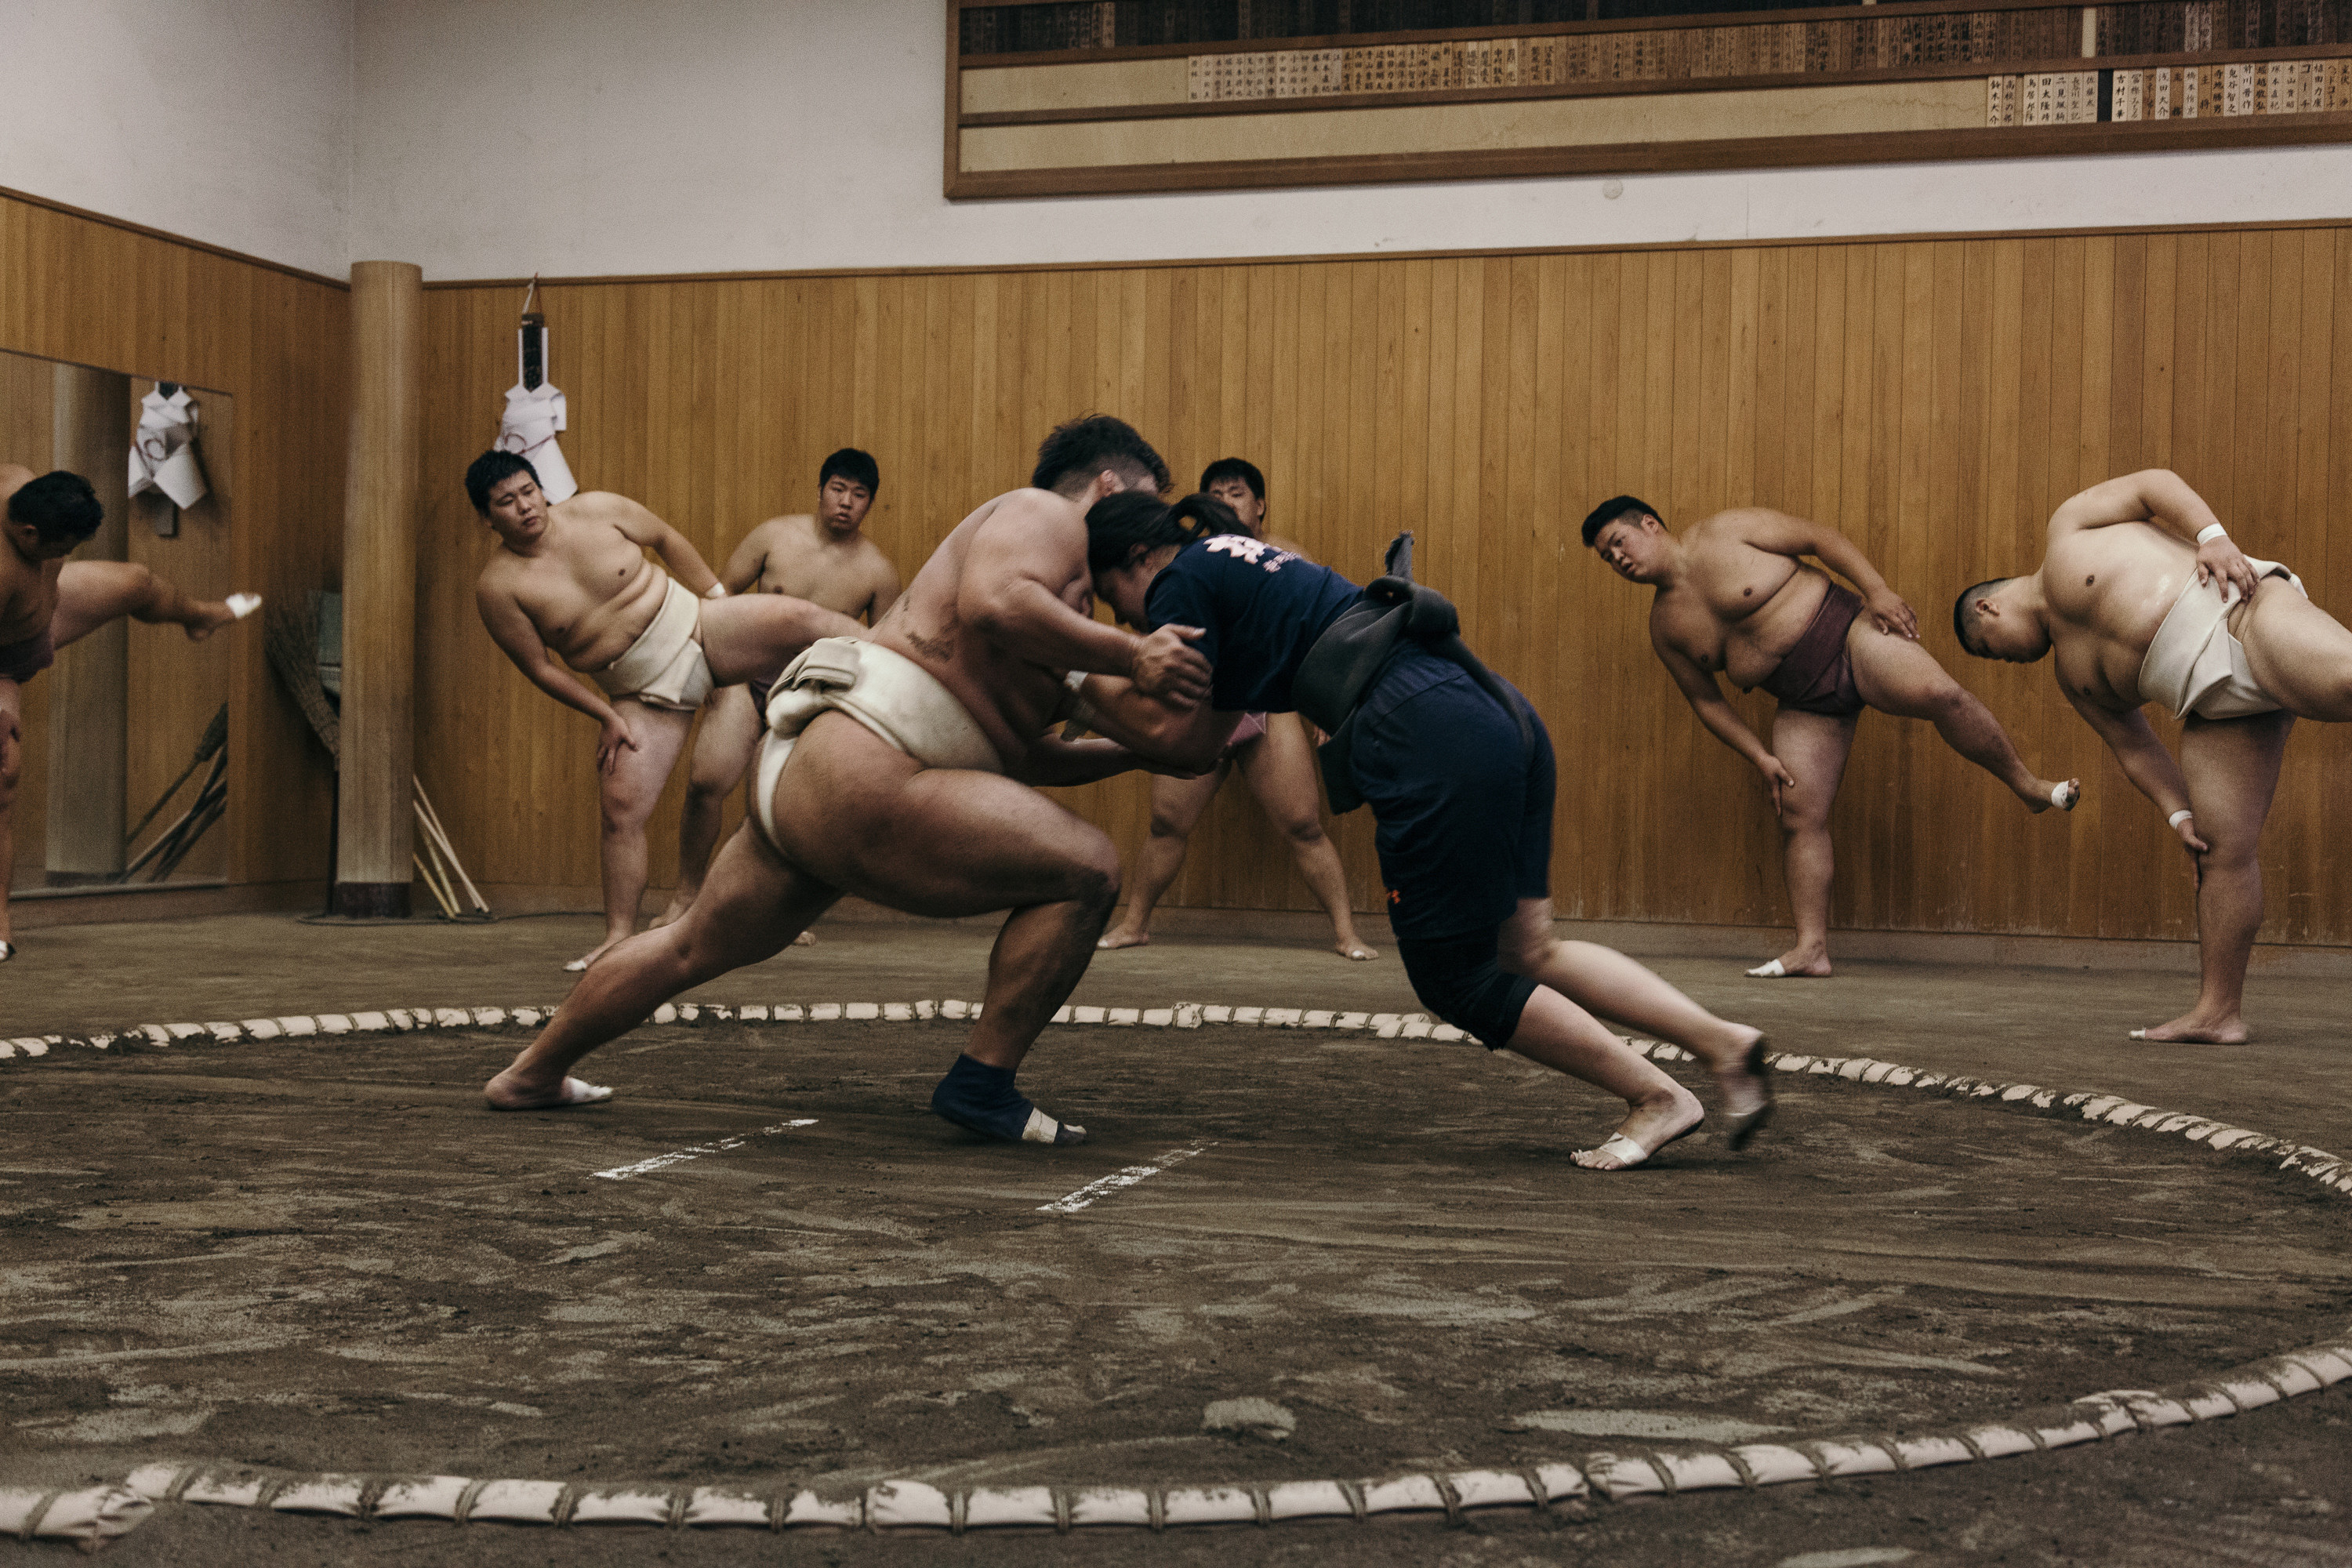 A young female sumo wrestler faces off with a male wrestler as other people exercise in the background